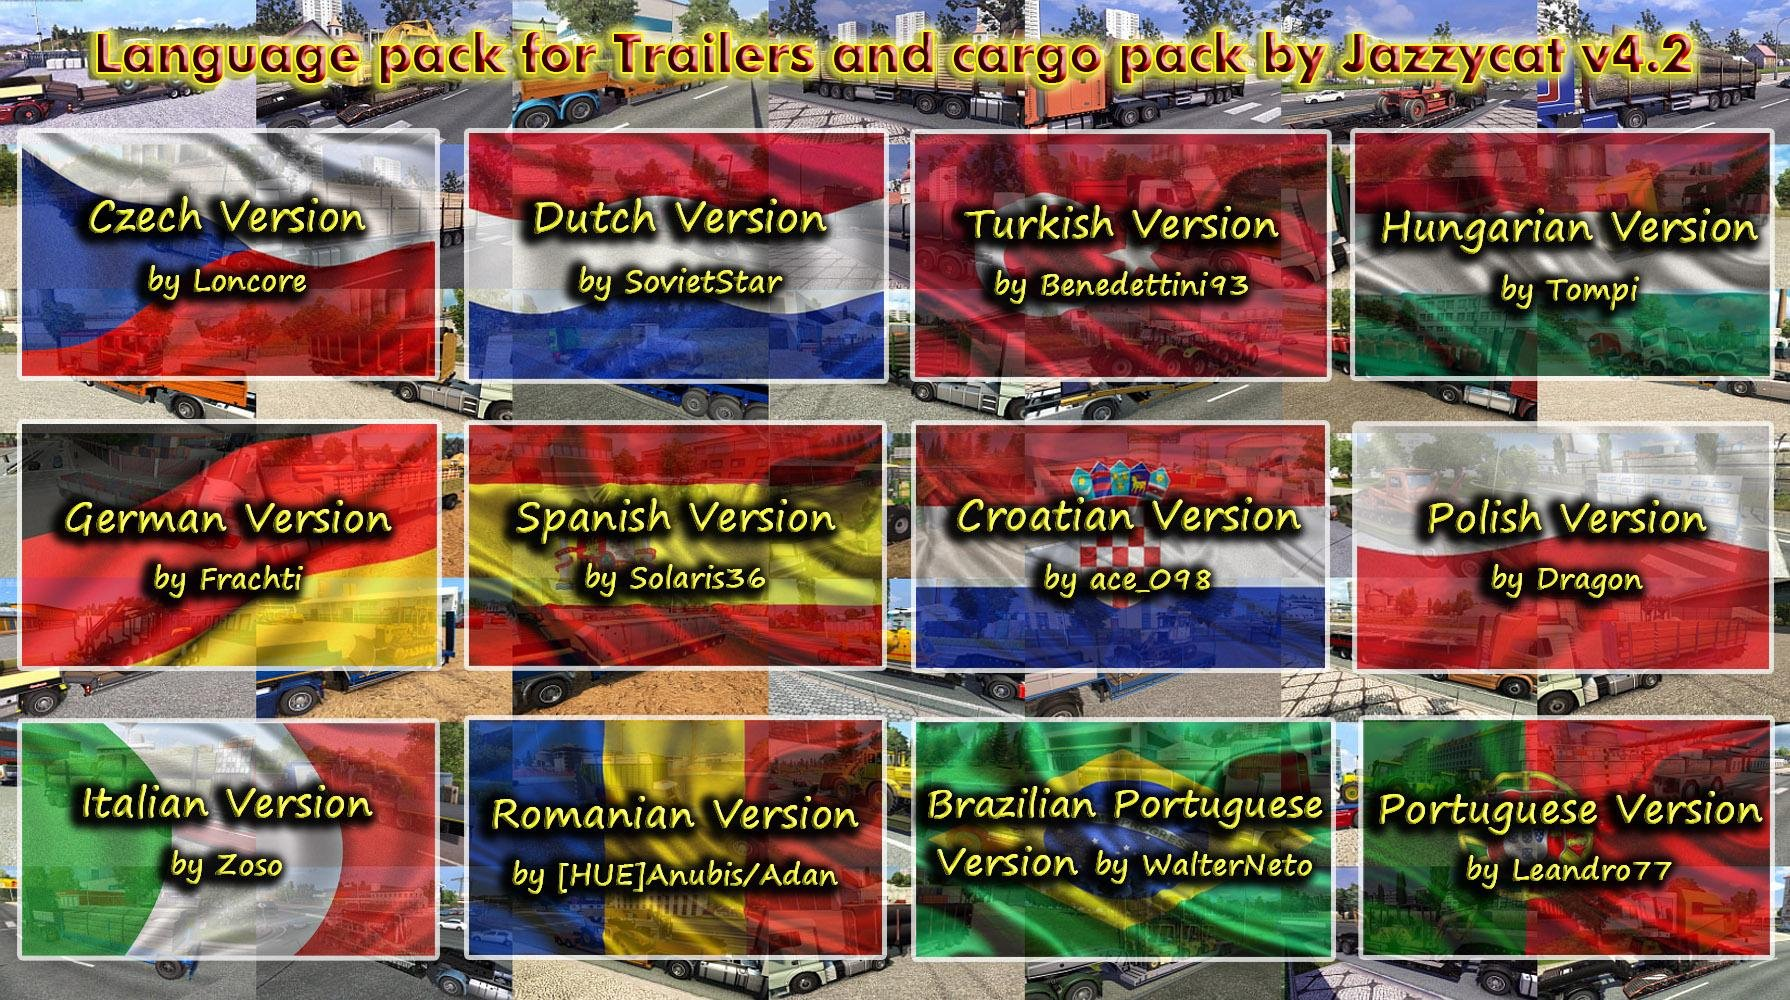 Updated Language Pack for Trailers and Cargo Pack by Jazzycat v 4.2